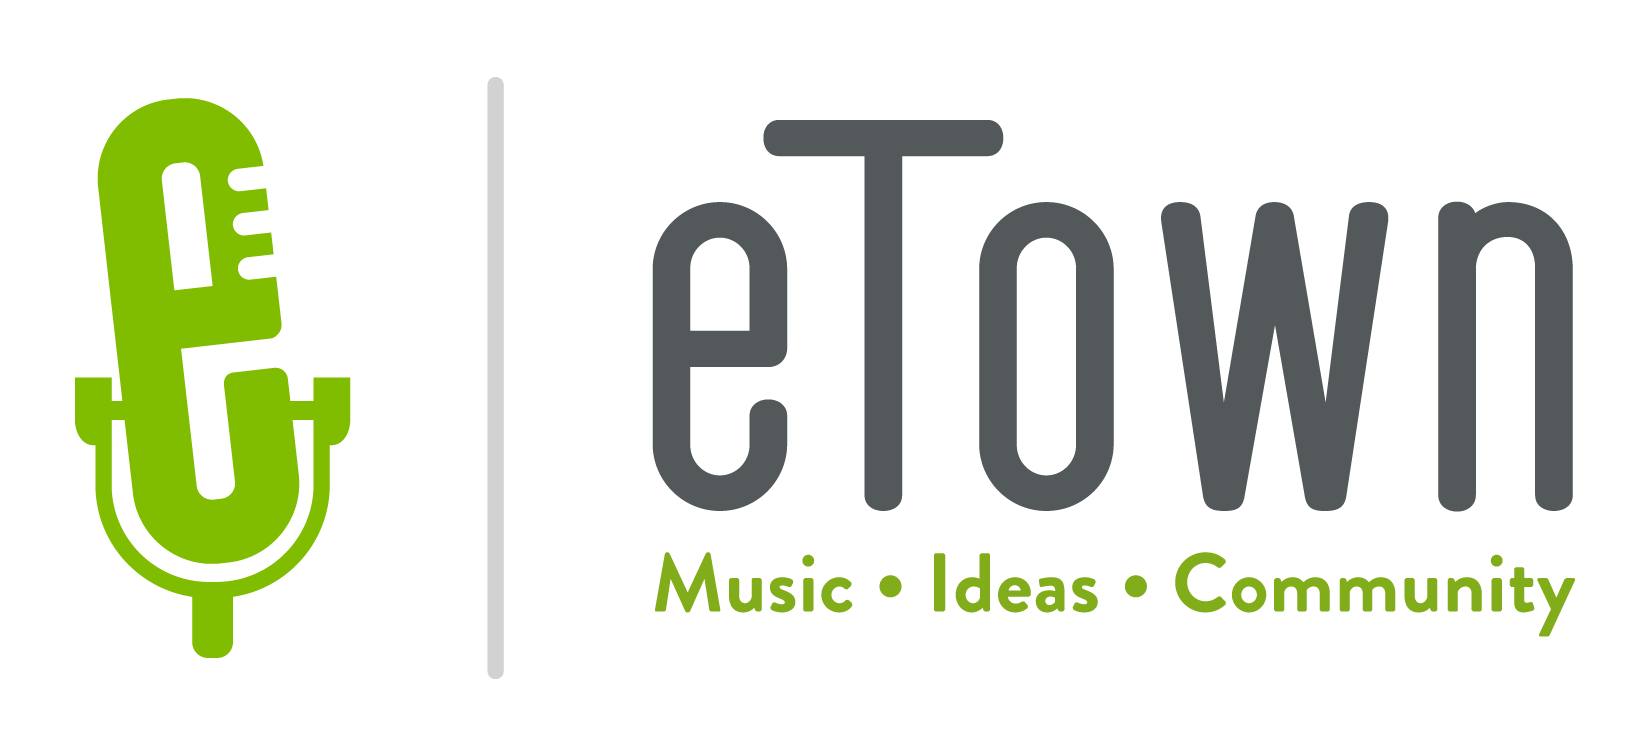 eTown_logo_color_horiz_tagline-copy-2 copy.png